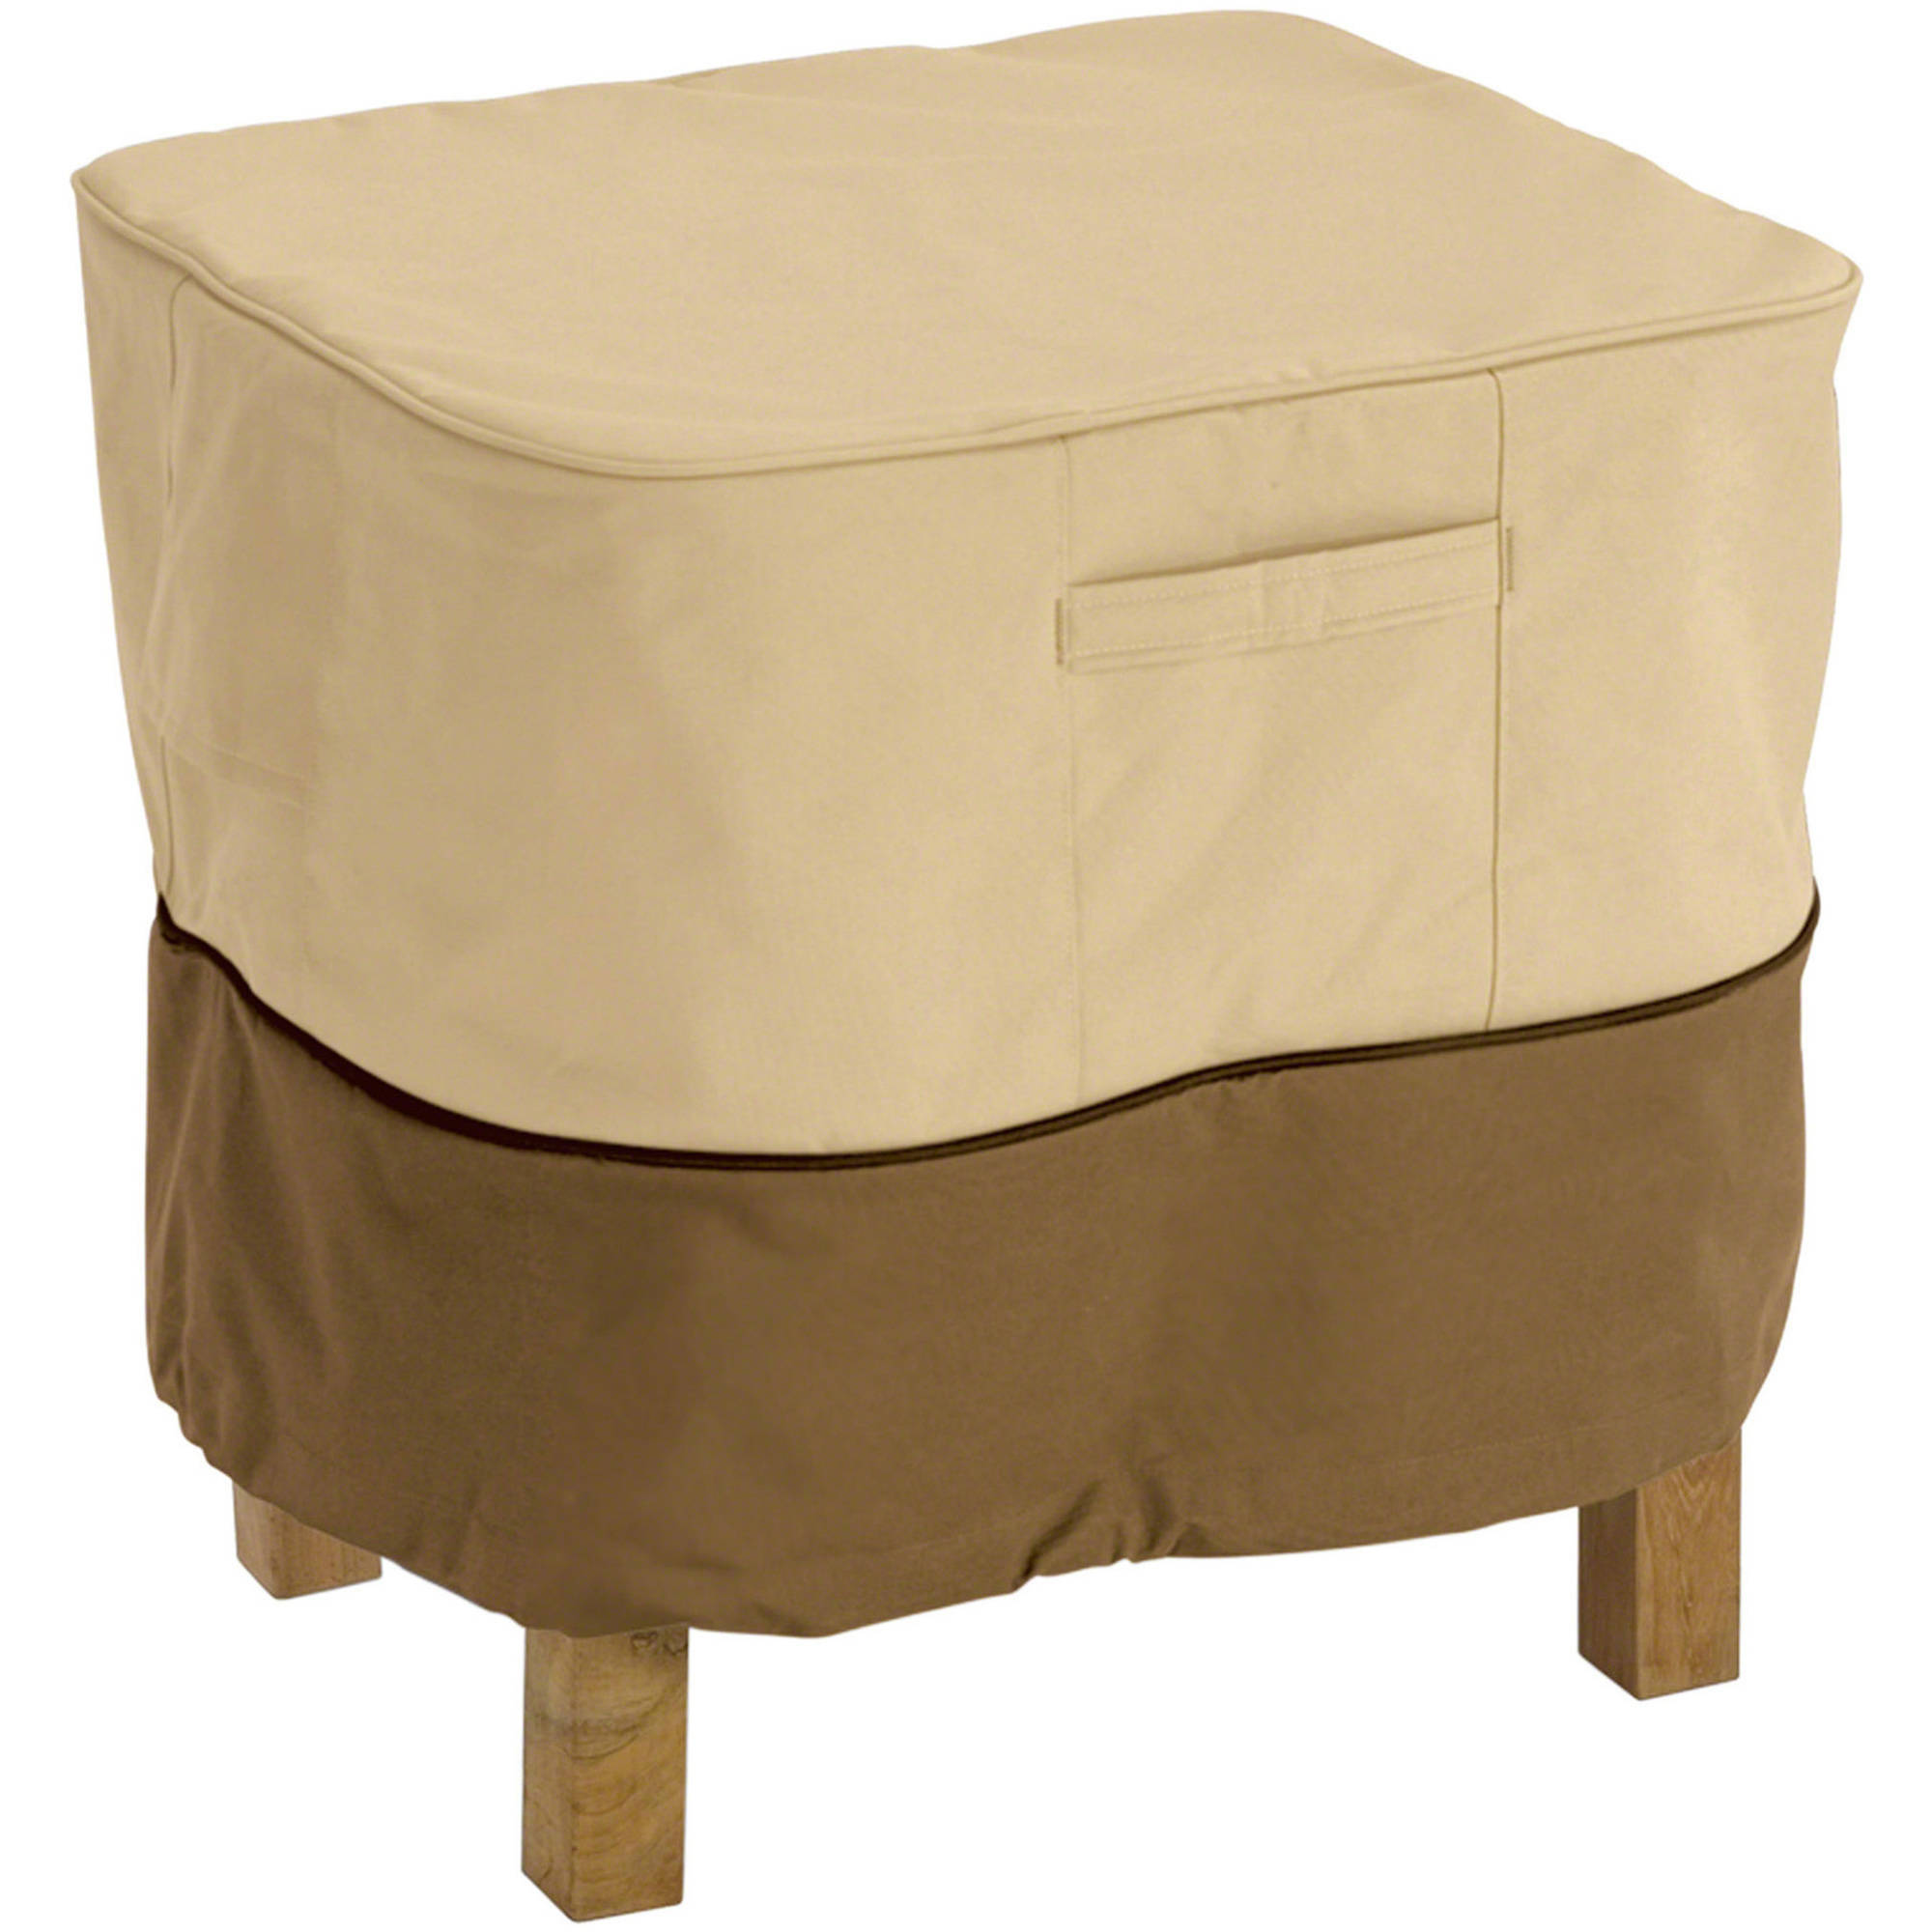 Classic Accessories Veranda Square Patio Ottoman And Table Furniture Storage  Cover, Fits Up To 21